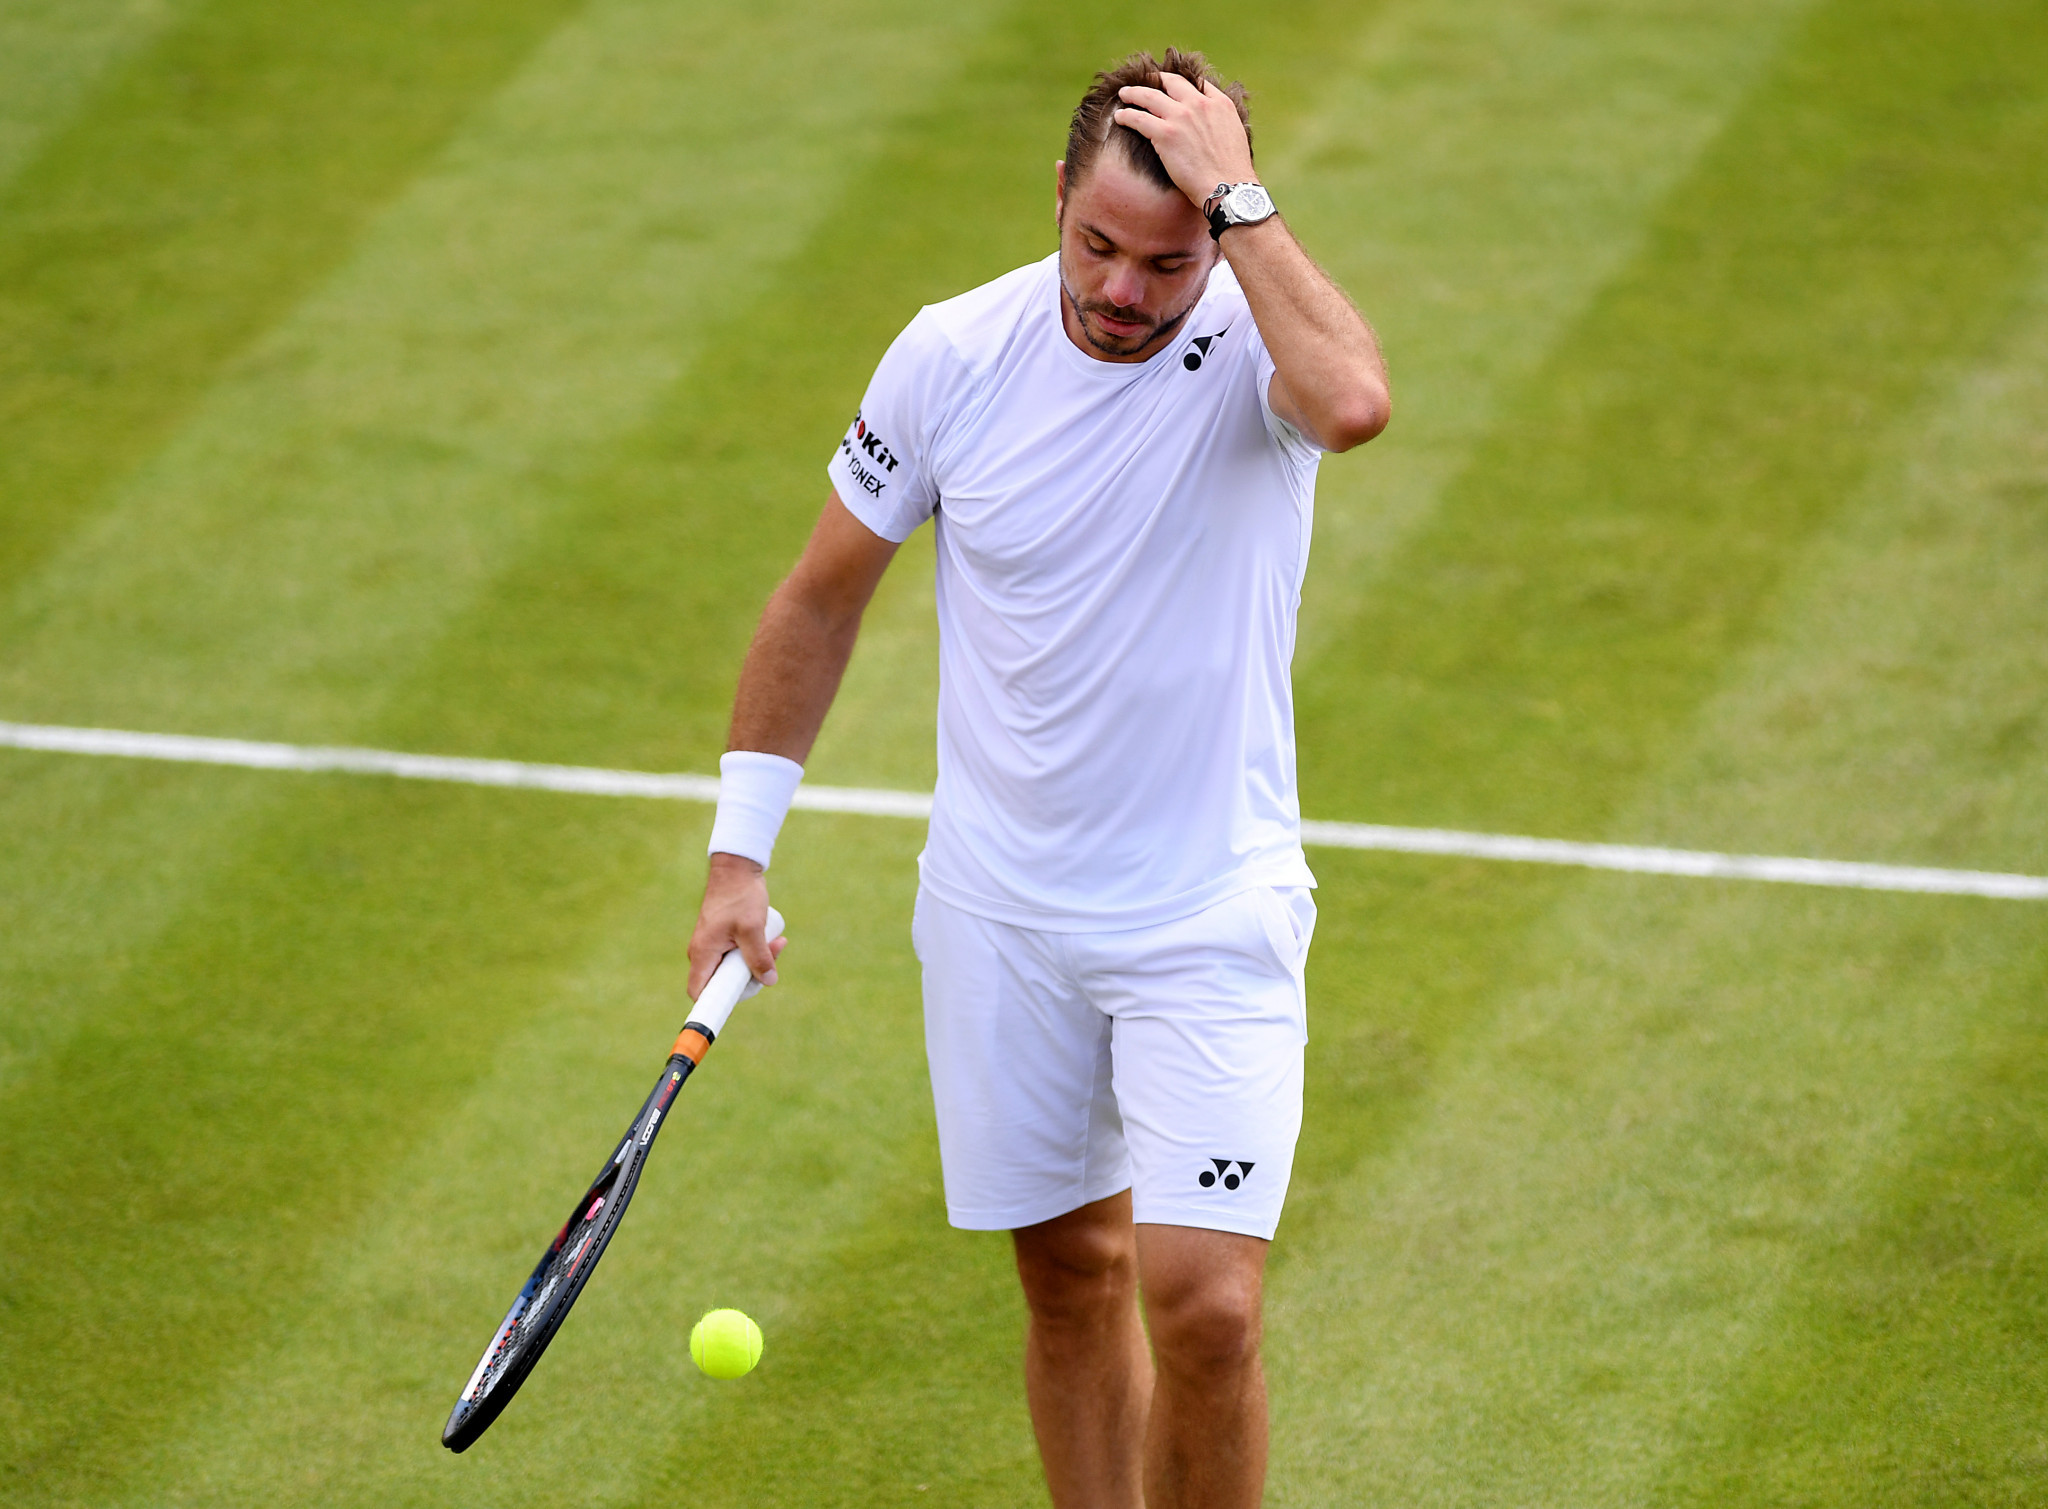 Stan Wawrinka's Wimbledon campaign is over ©Getty Images